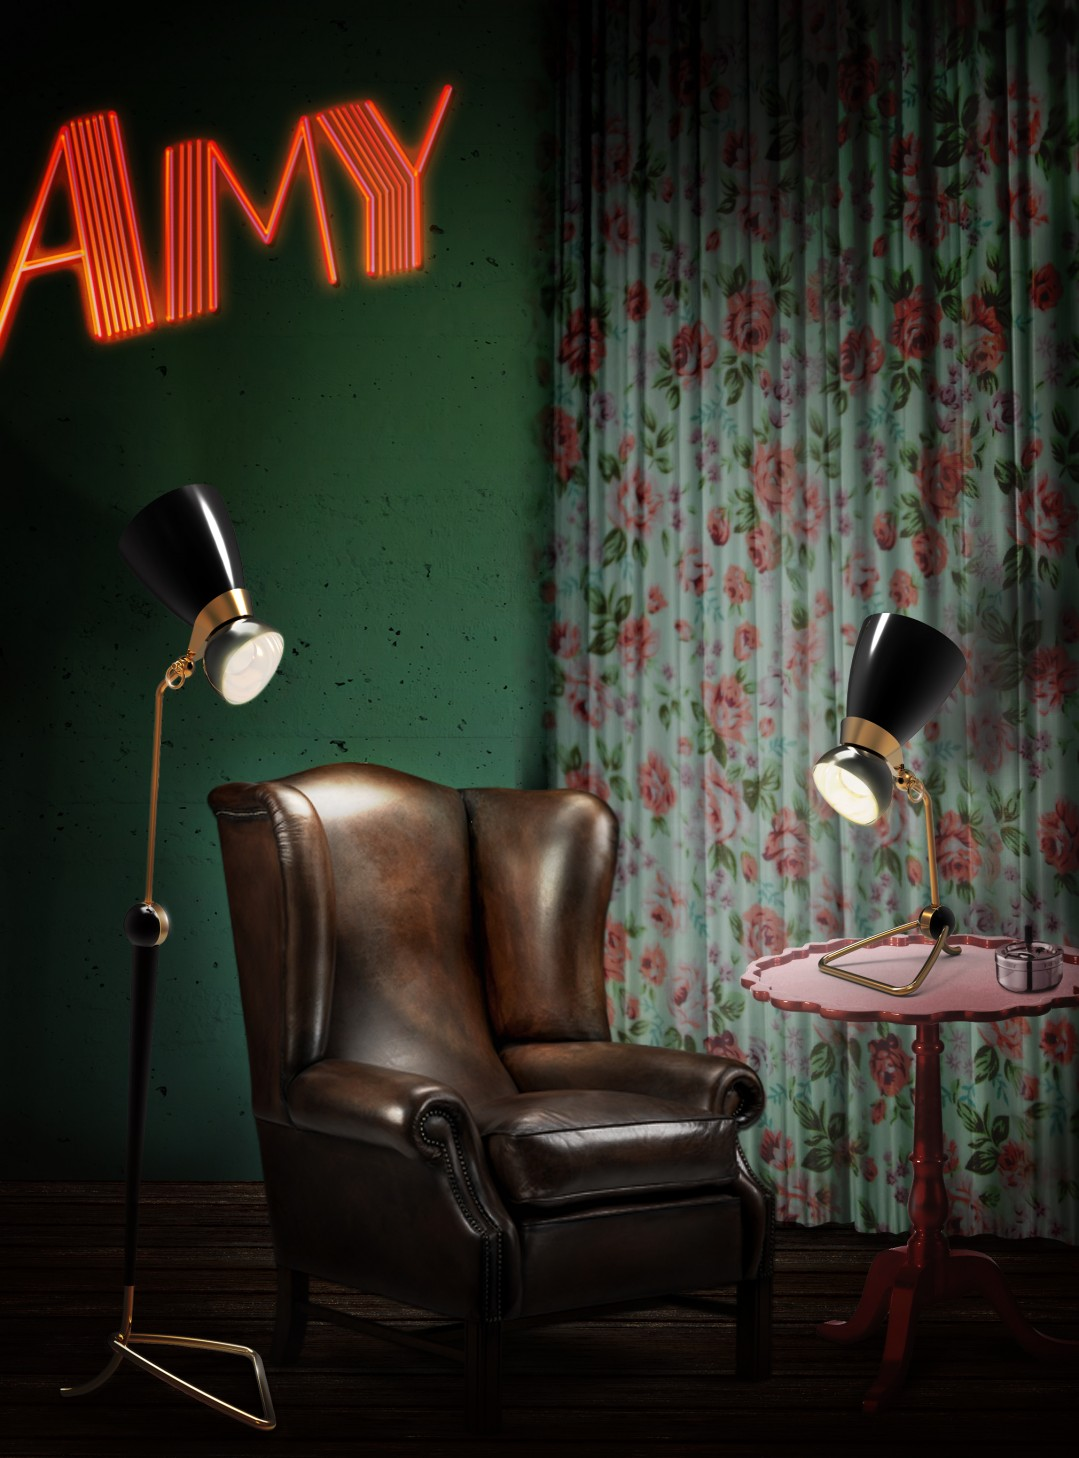 studio 240 studio 240 Studio 240 Is A Mexican Studio Looking For Mid-Century Influence! amy floor ambience 02 HR688e5d0150efe564890a0dbe3e66ec88